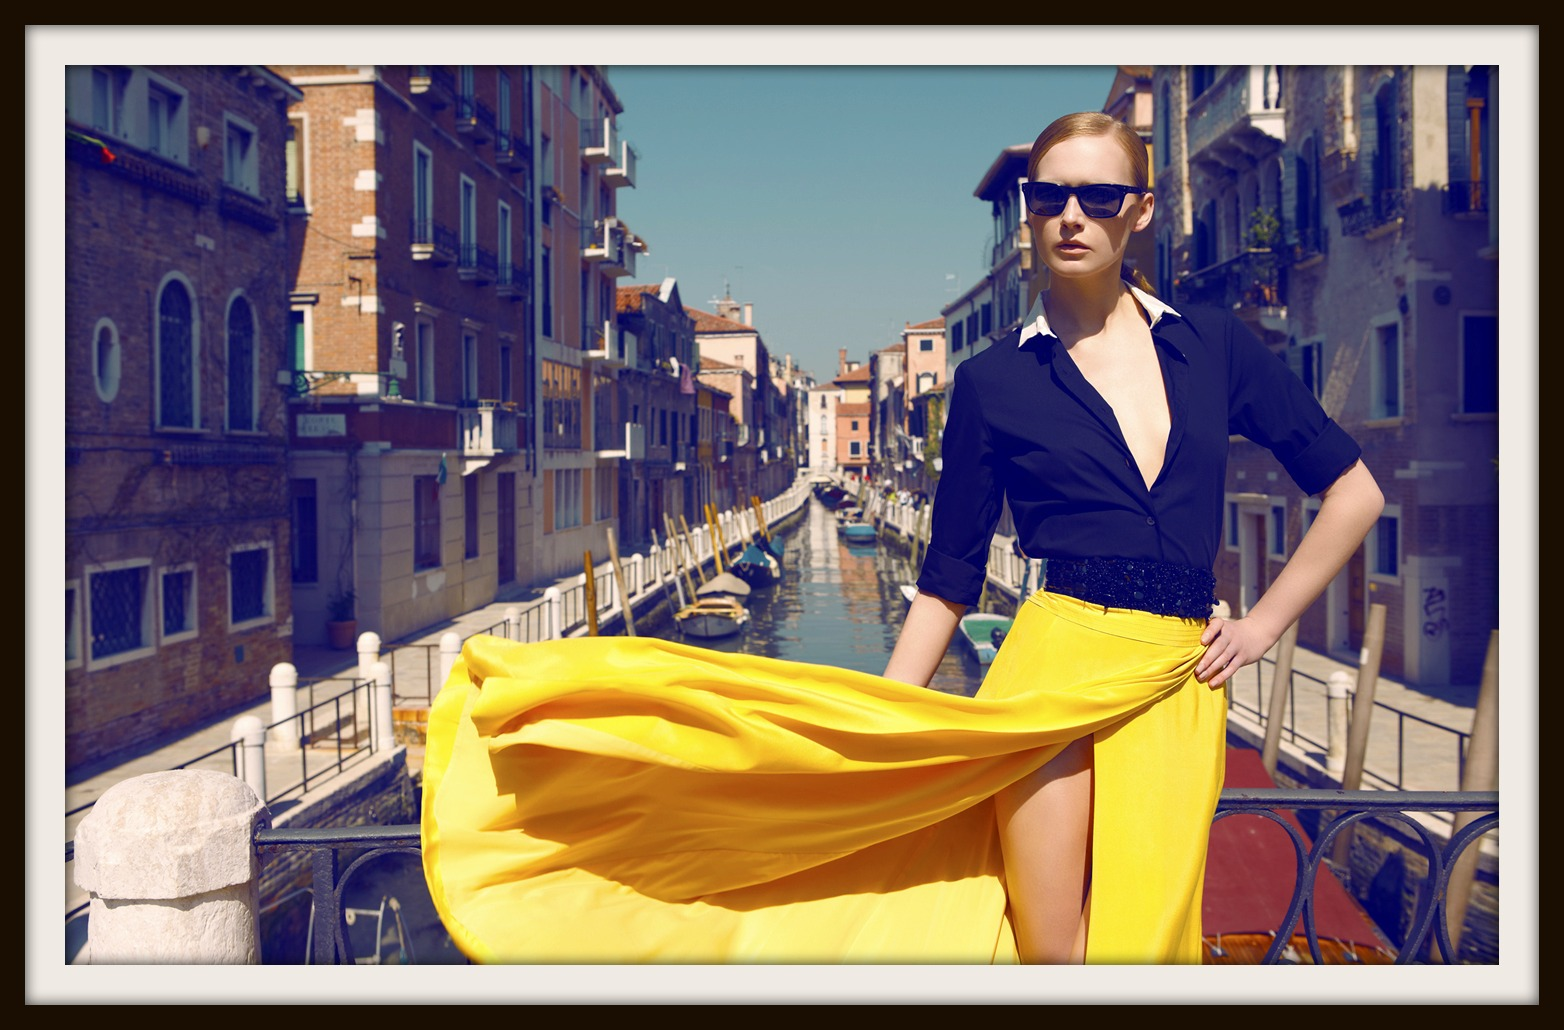 Model Viola Kowal by Koray Parlak in Marie Claire Turkey Collage Venezia